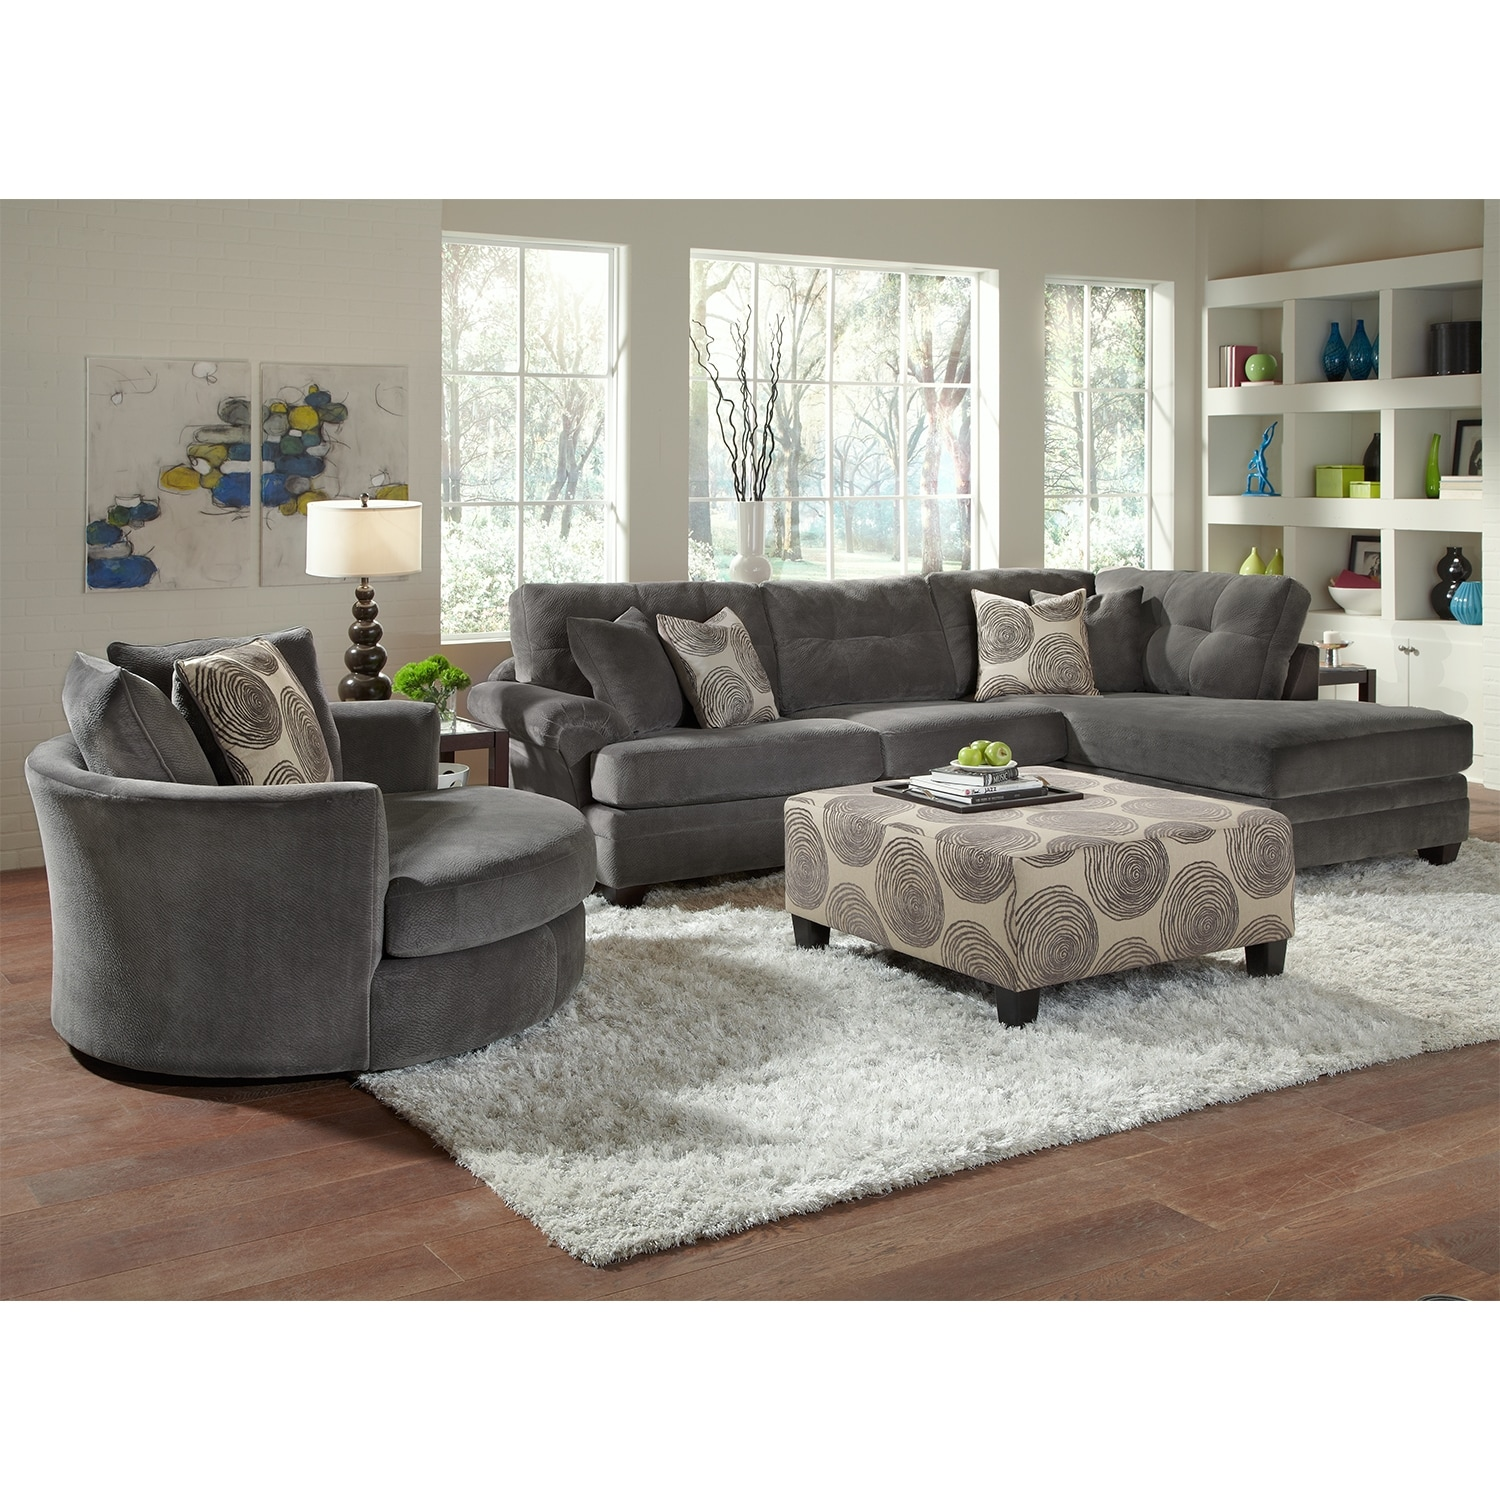 cordoba gray ii 2 pc sectional and swivel chair american signature